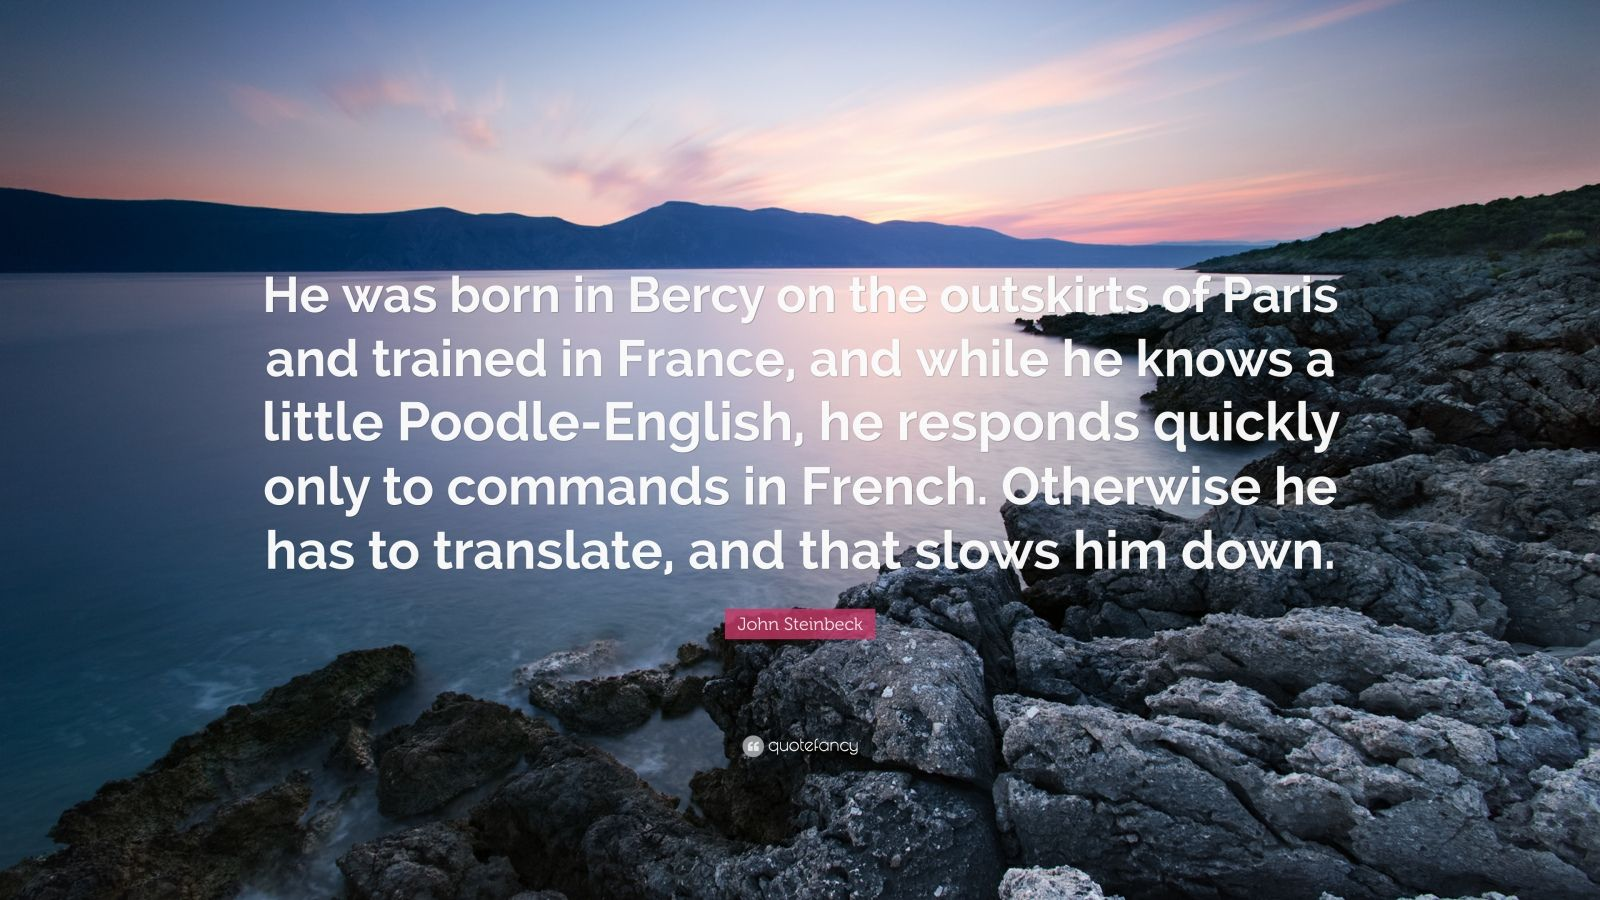 """John Steinbeck Quote: """"He was born in Bercy on the outskirts of Paris and trained in France, and while he knows a little Poodle-English, he responds quickly only to commands in French. Otherwise he has to translate, and that slows him down."""""""